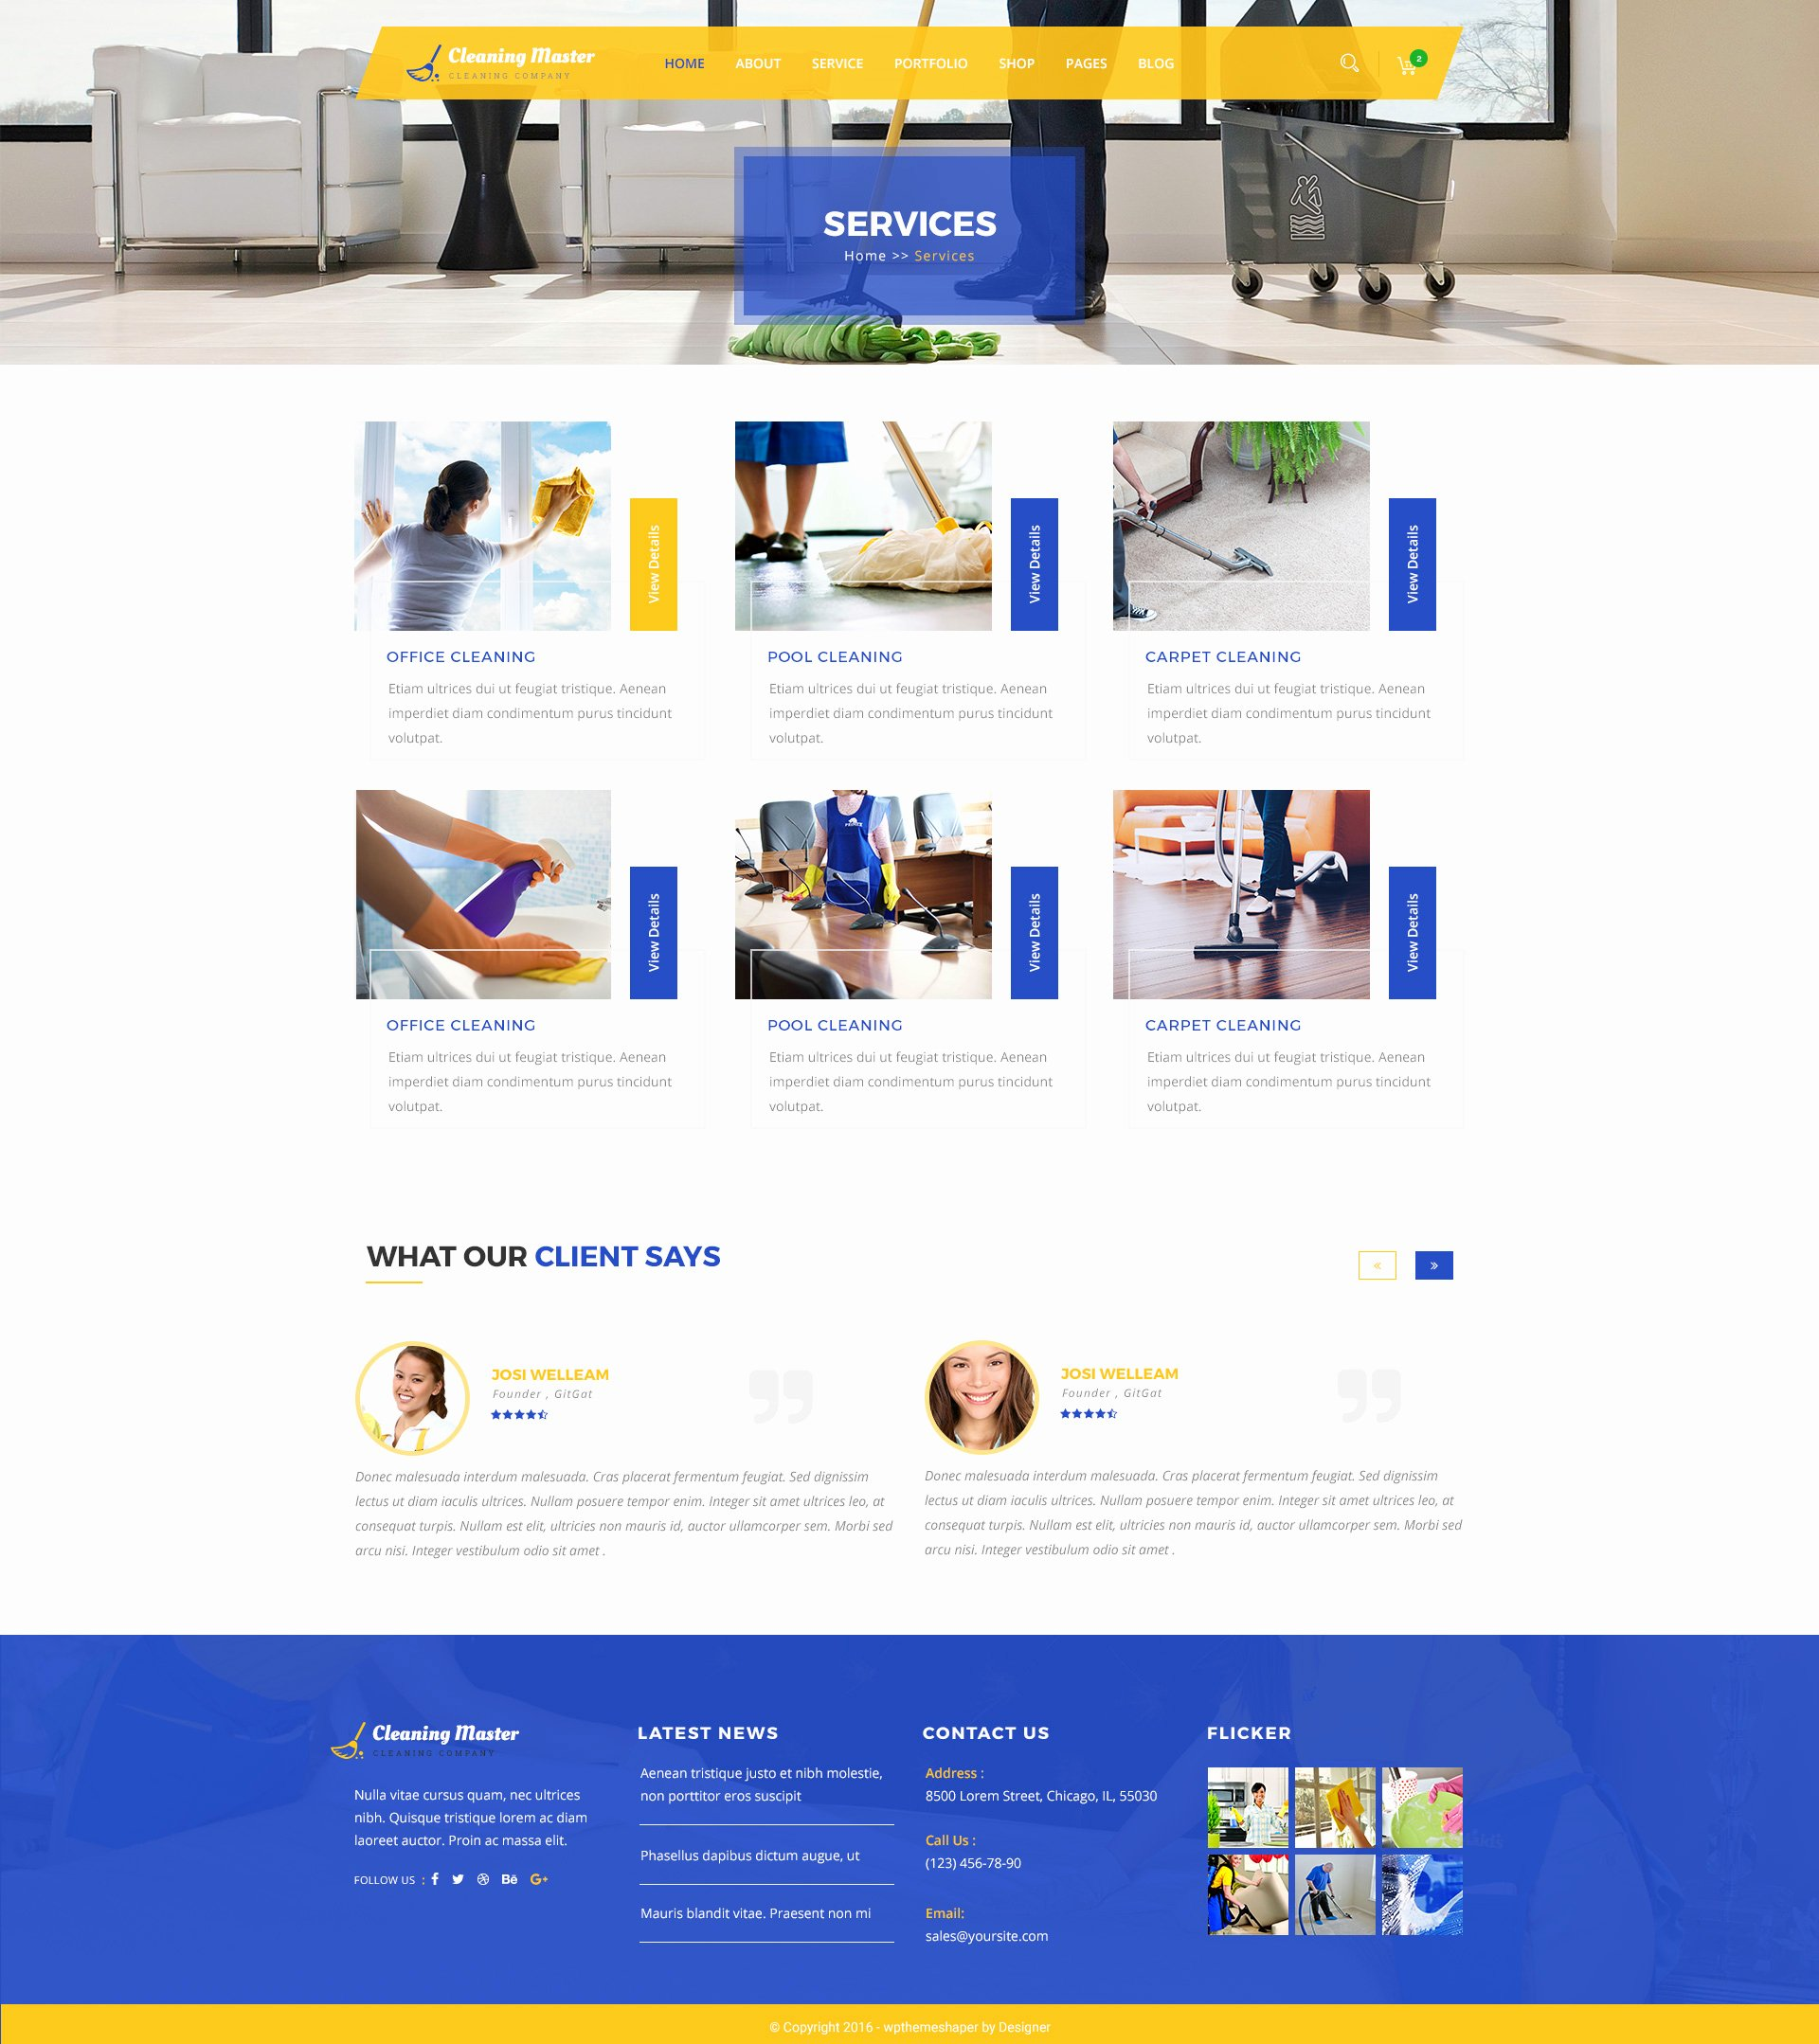 Cleaning Services Website Template New Clening Master Cleaning Pany Psd Template by